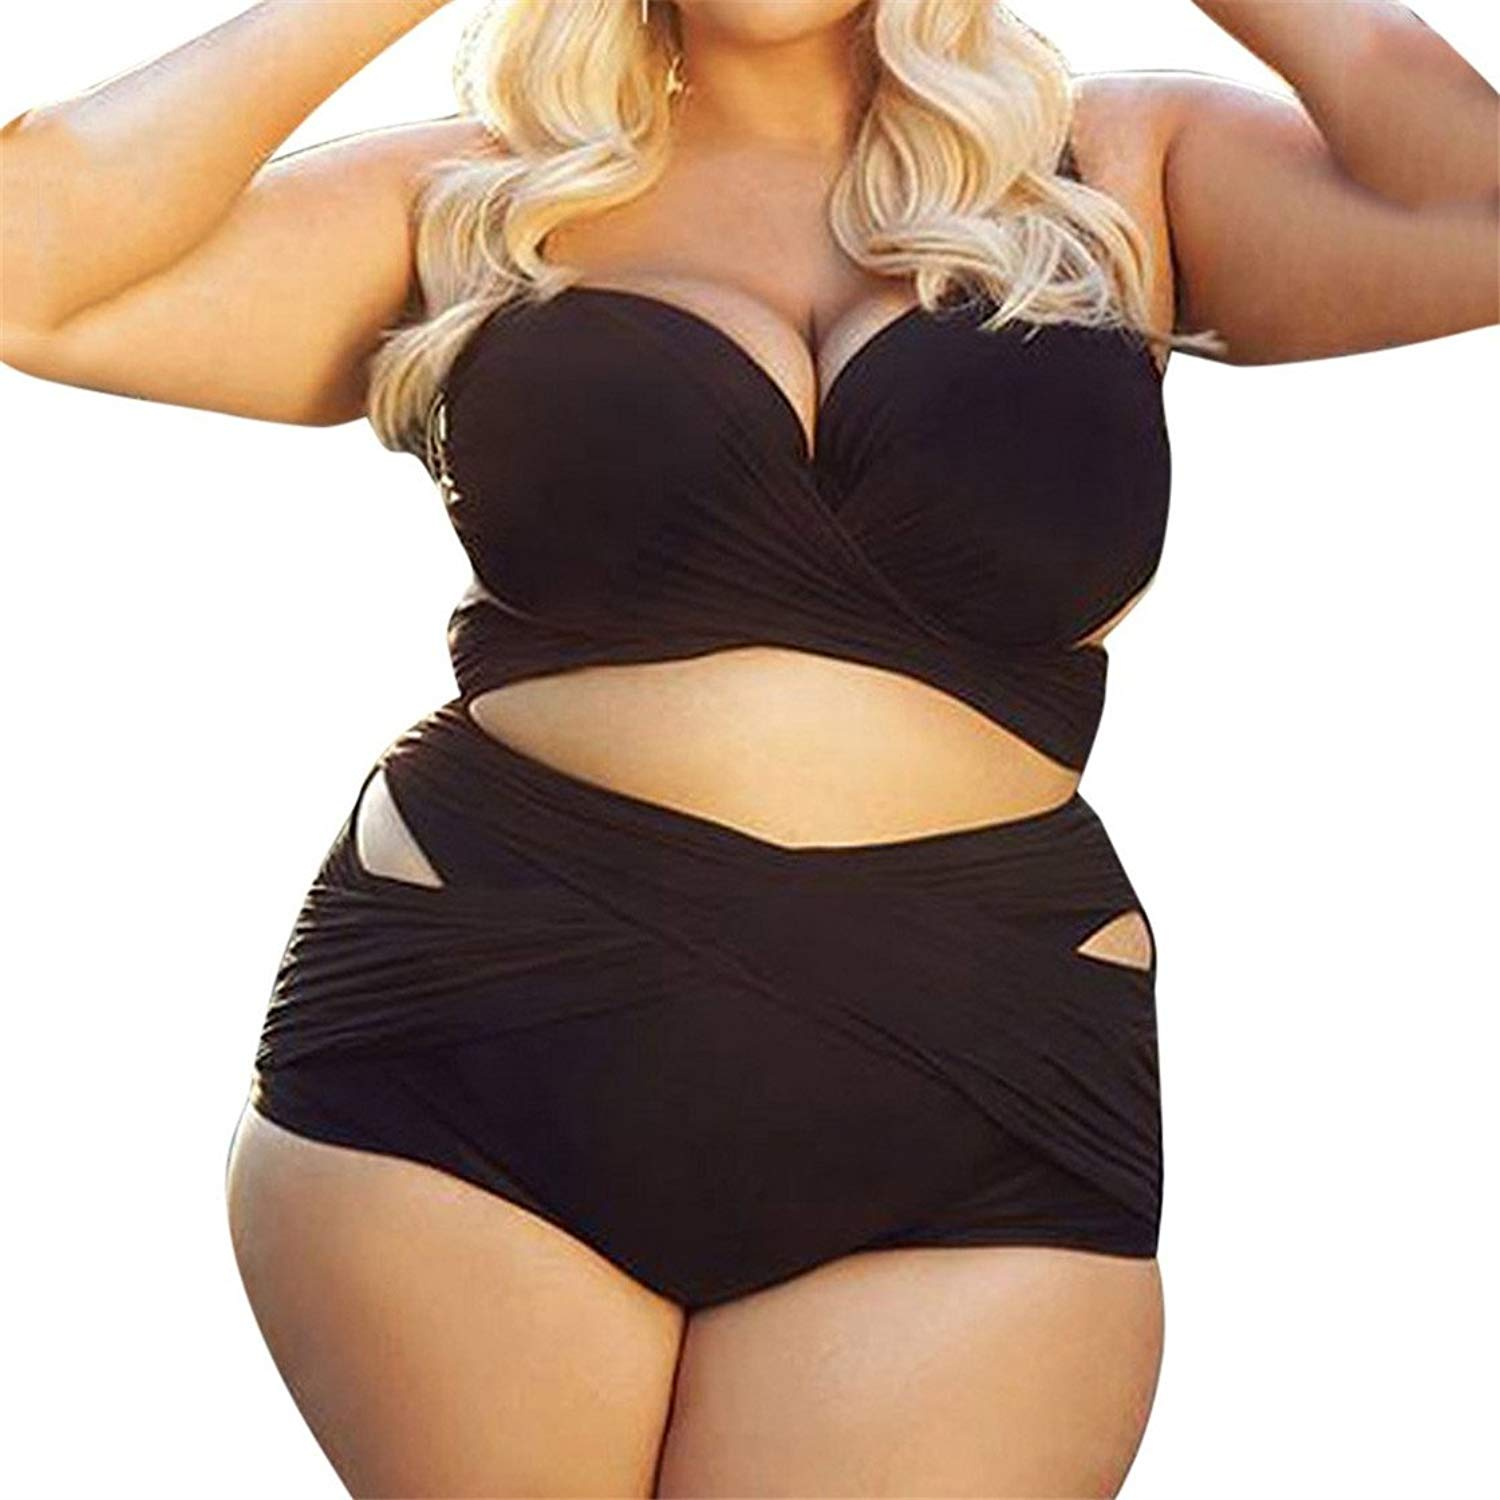 703c393eb310f Get Quotations · Mose Plus Size Swimsuits for Big Women